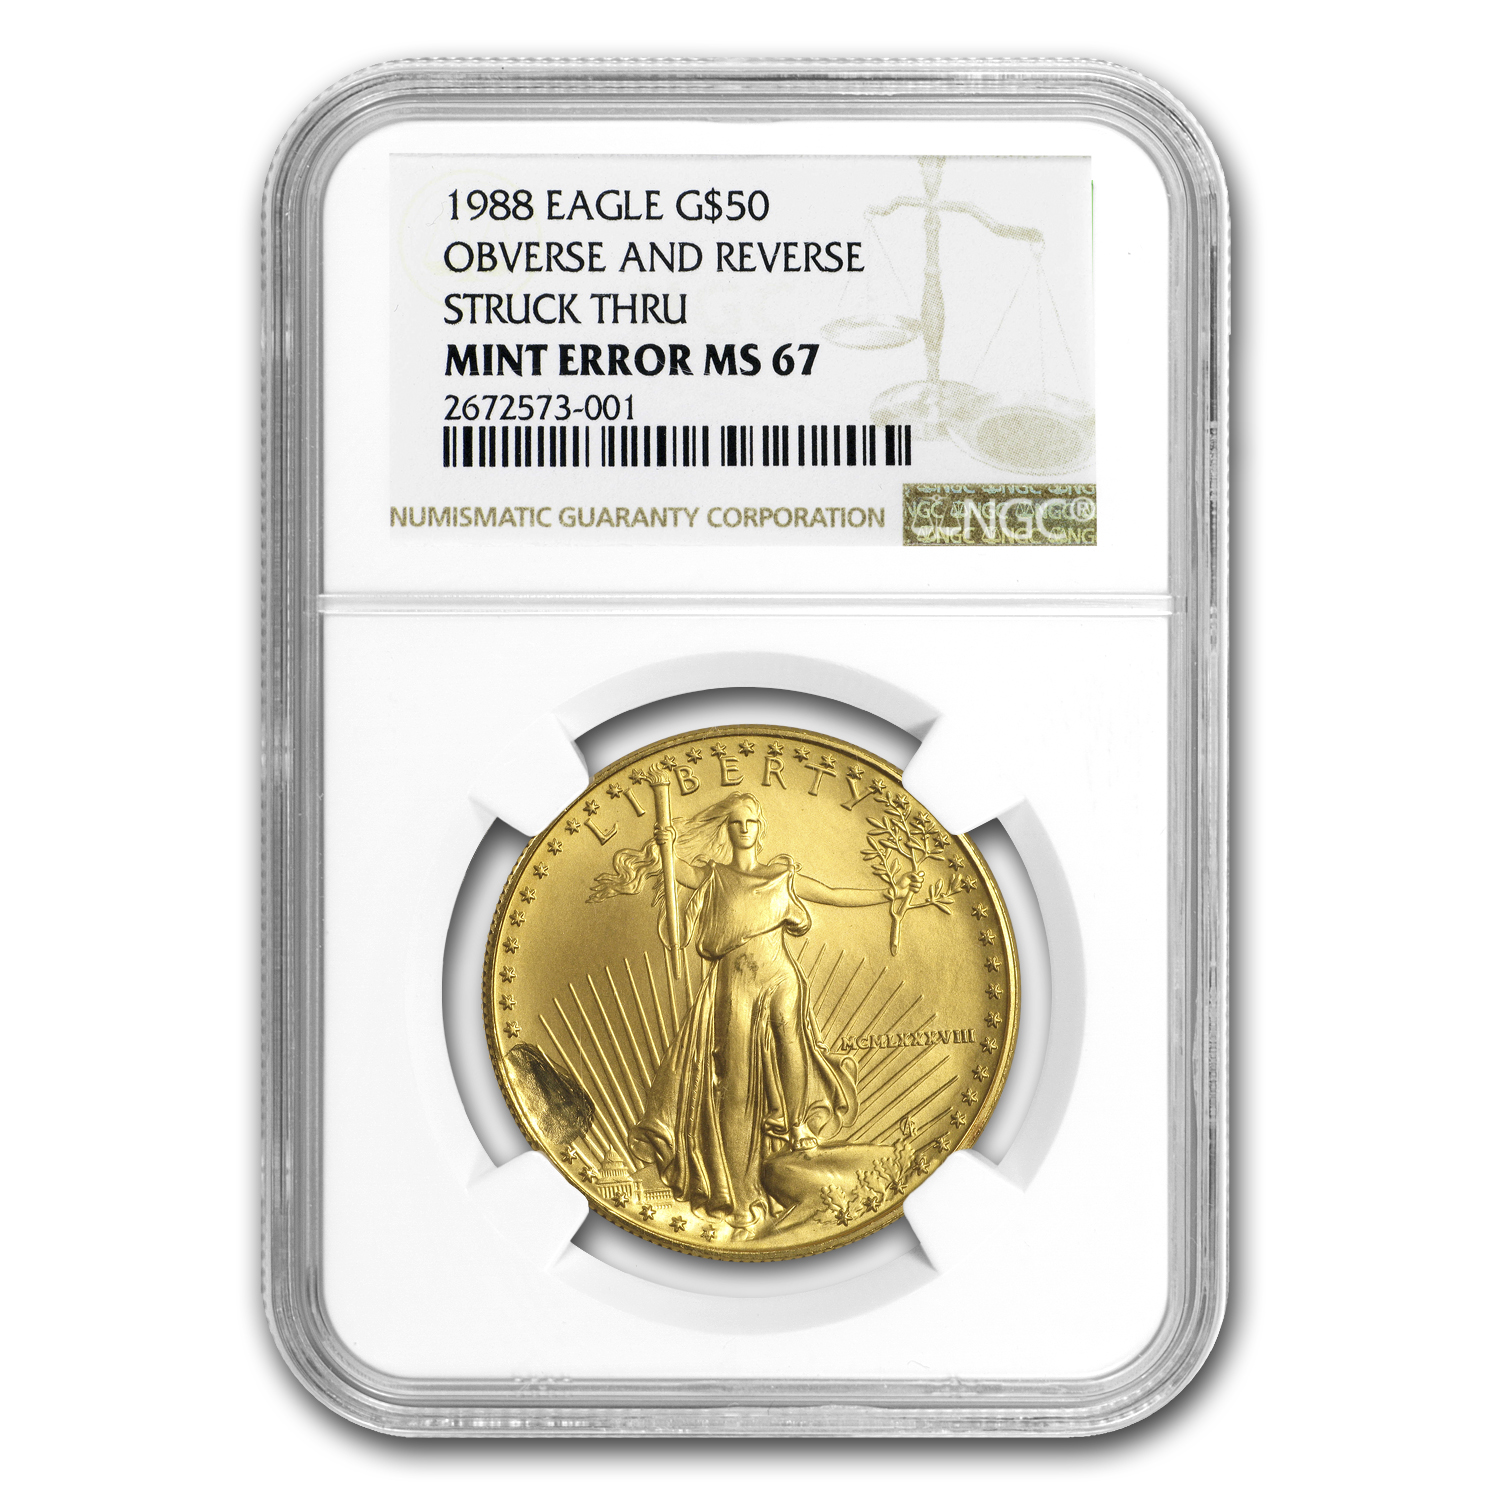 1988 1 oz Gold American Eagle MS-67 NGC (Obv Mint Error)